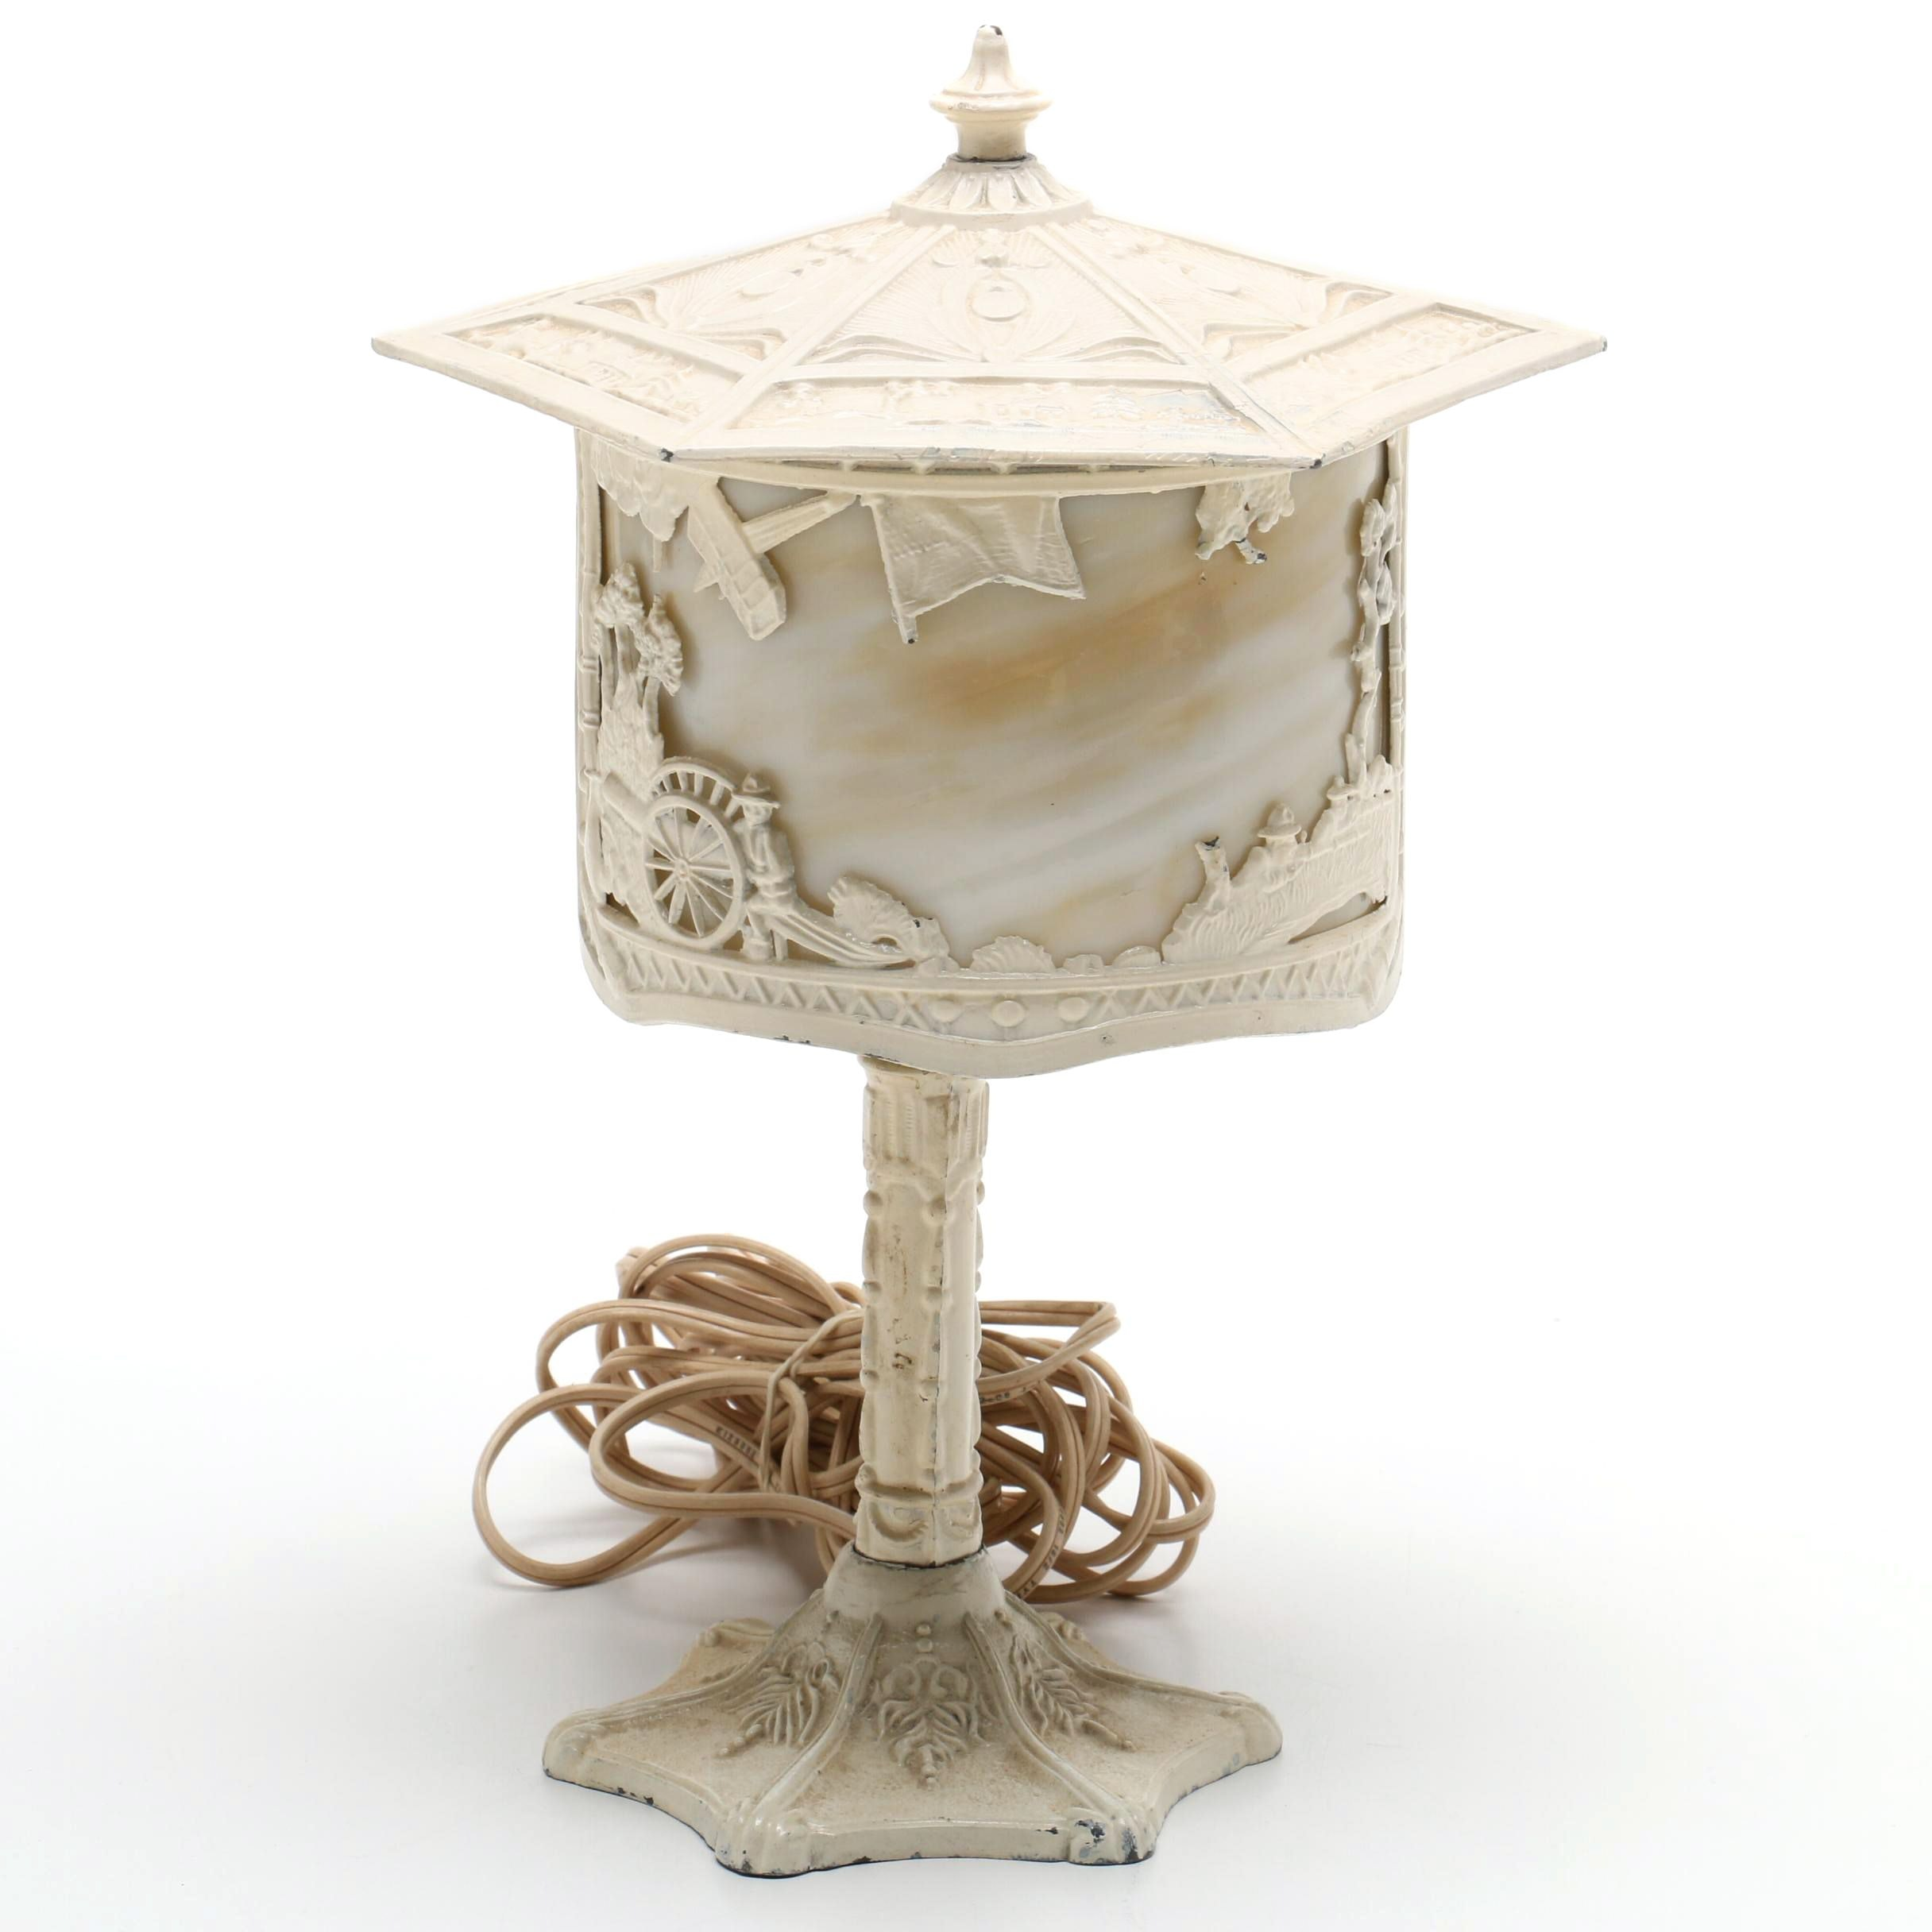 Painted Cast Metal and Slag Glass Table Lamp, Early 20th Century